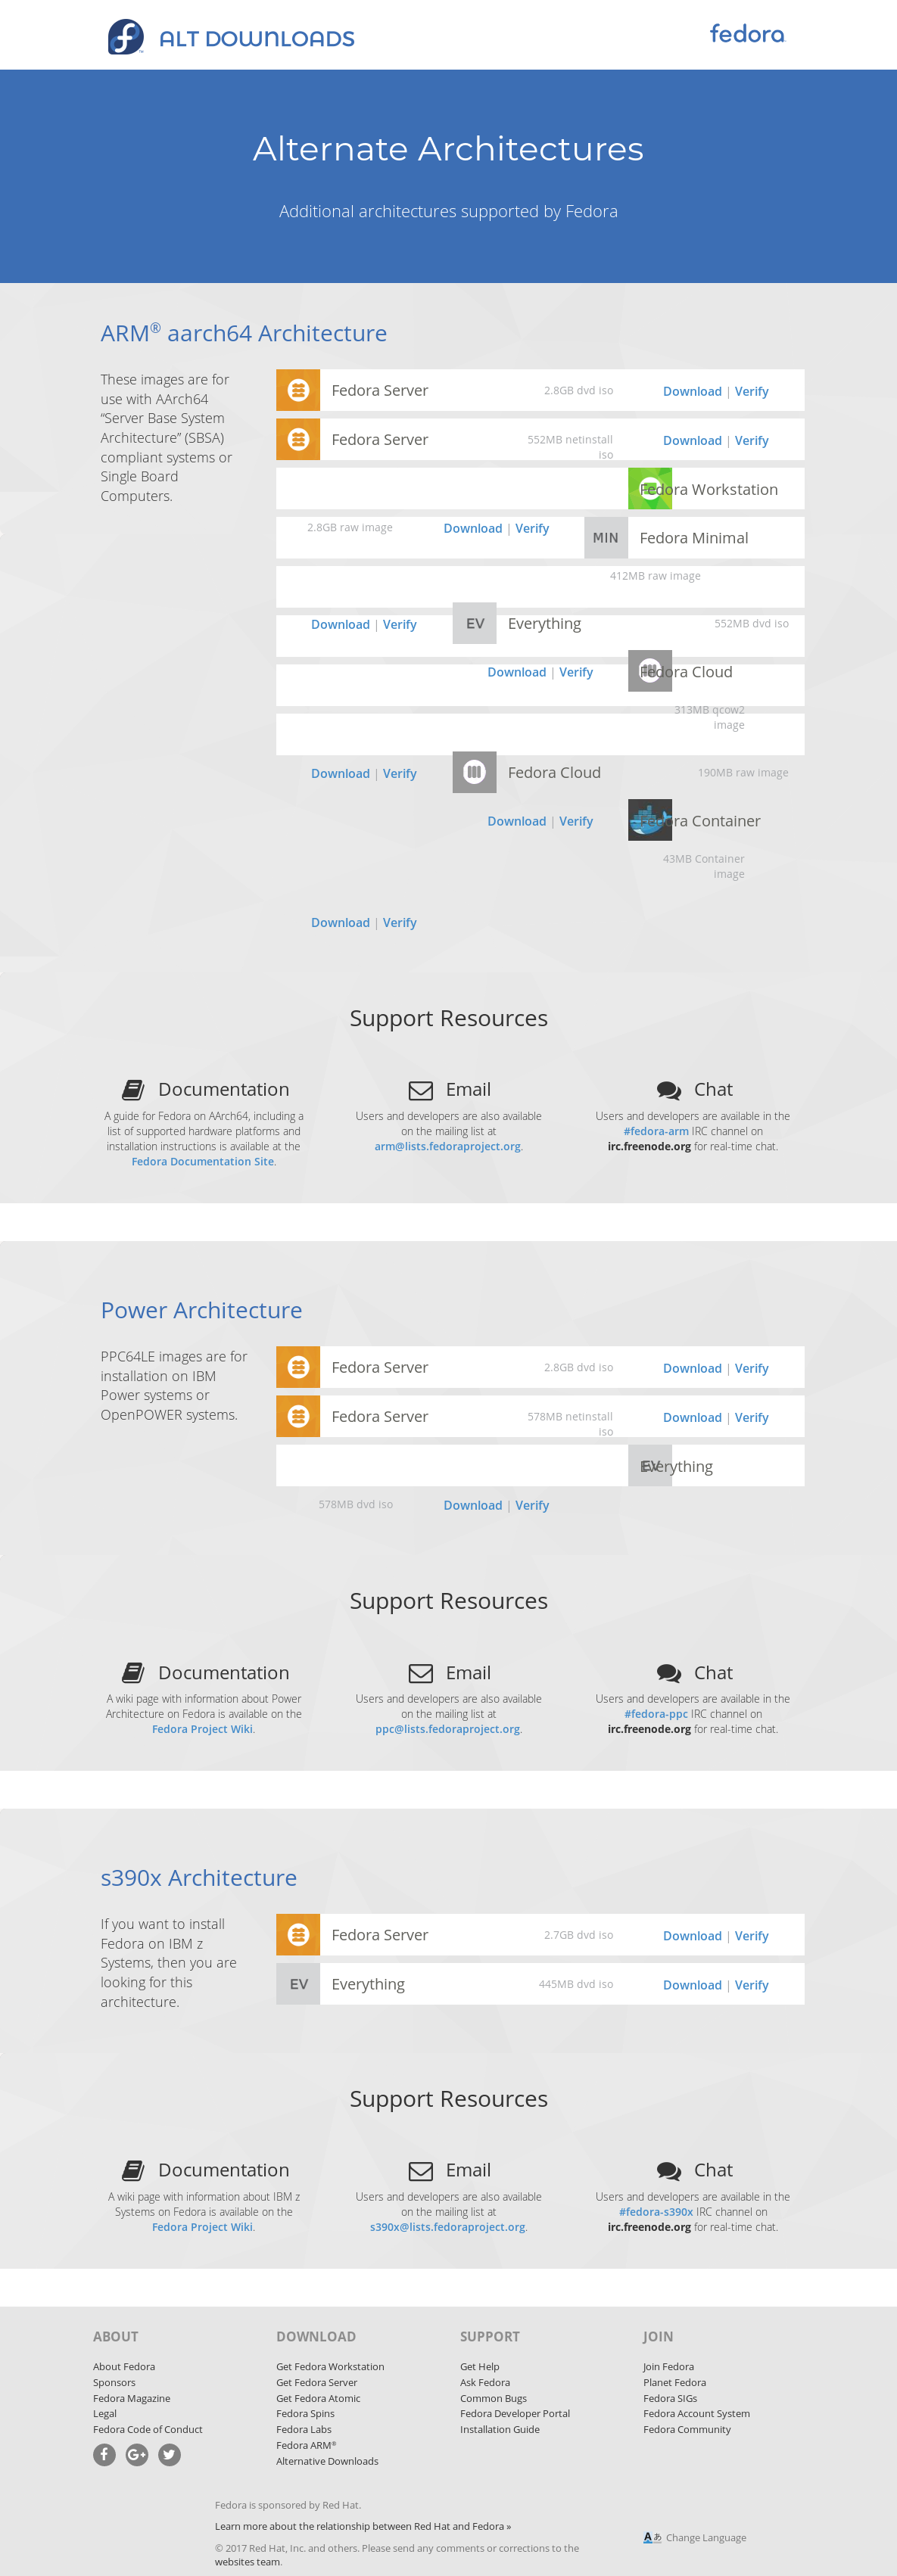 Screenshot_2019-05-31_Fedora_Alternate_Architectures.png